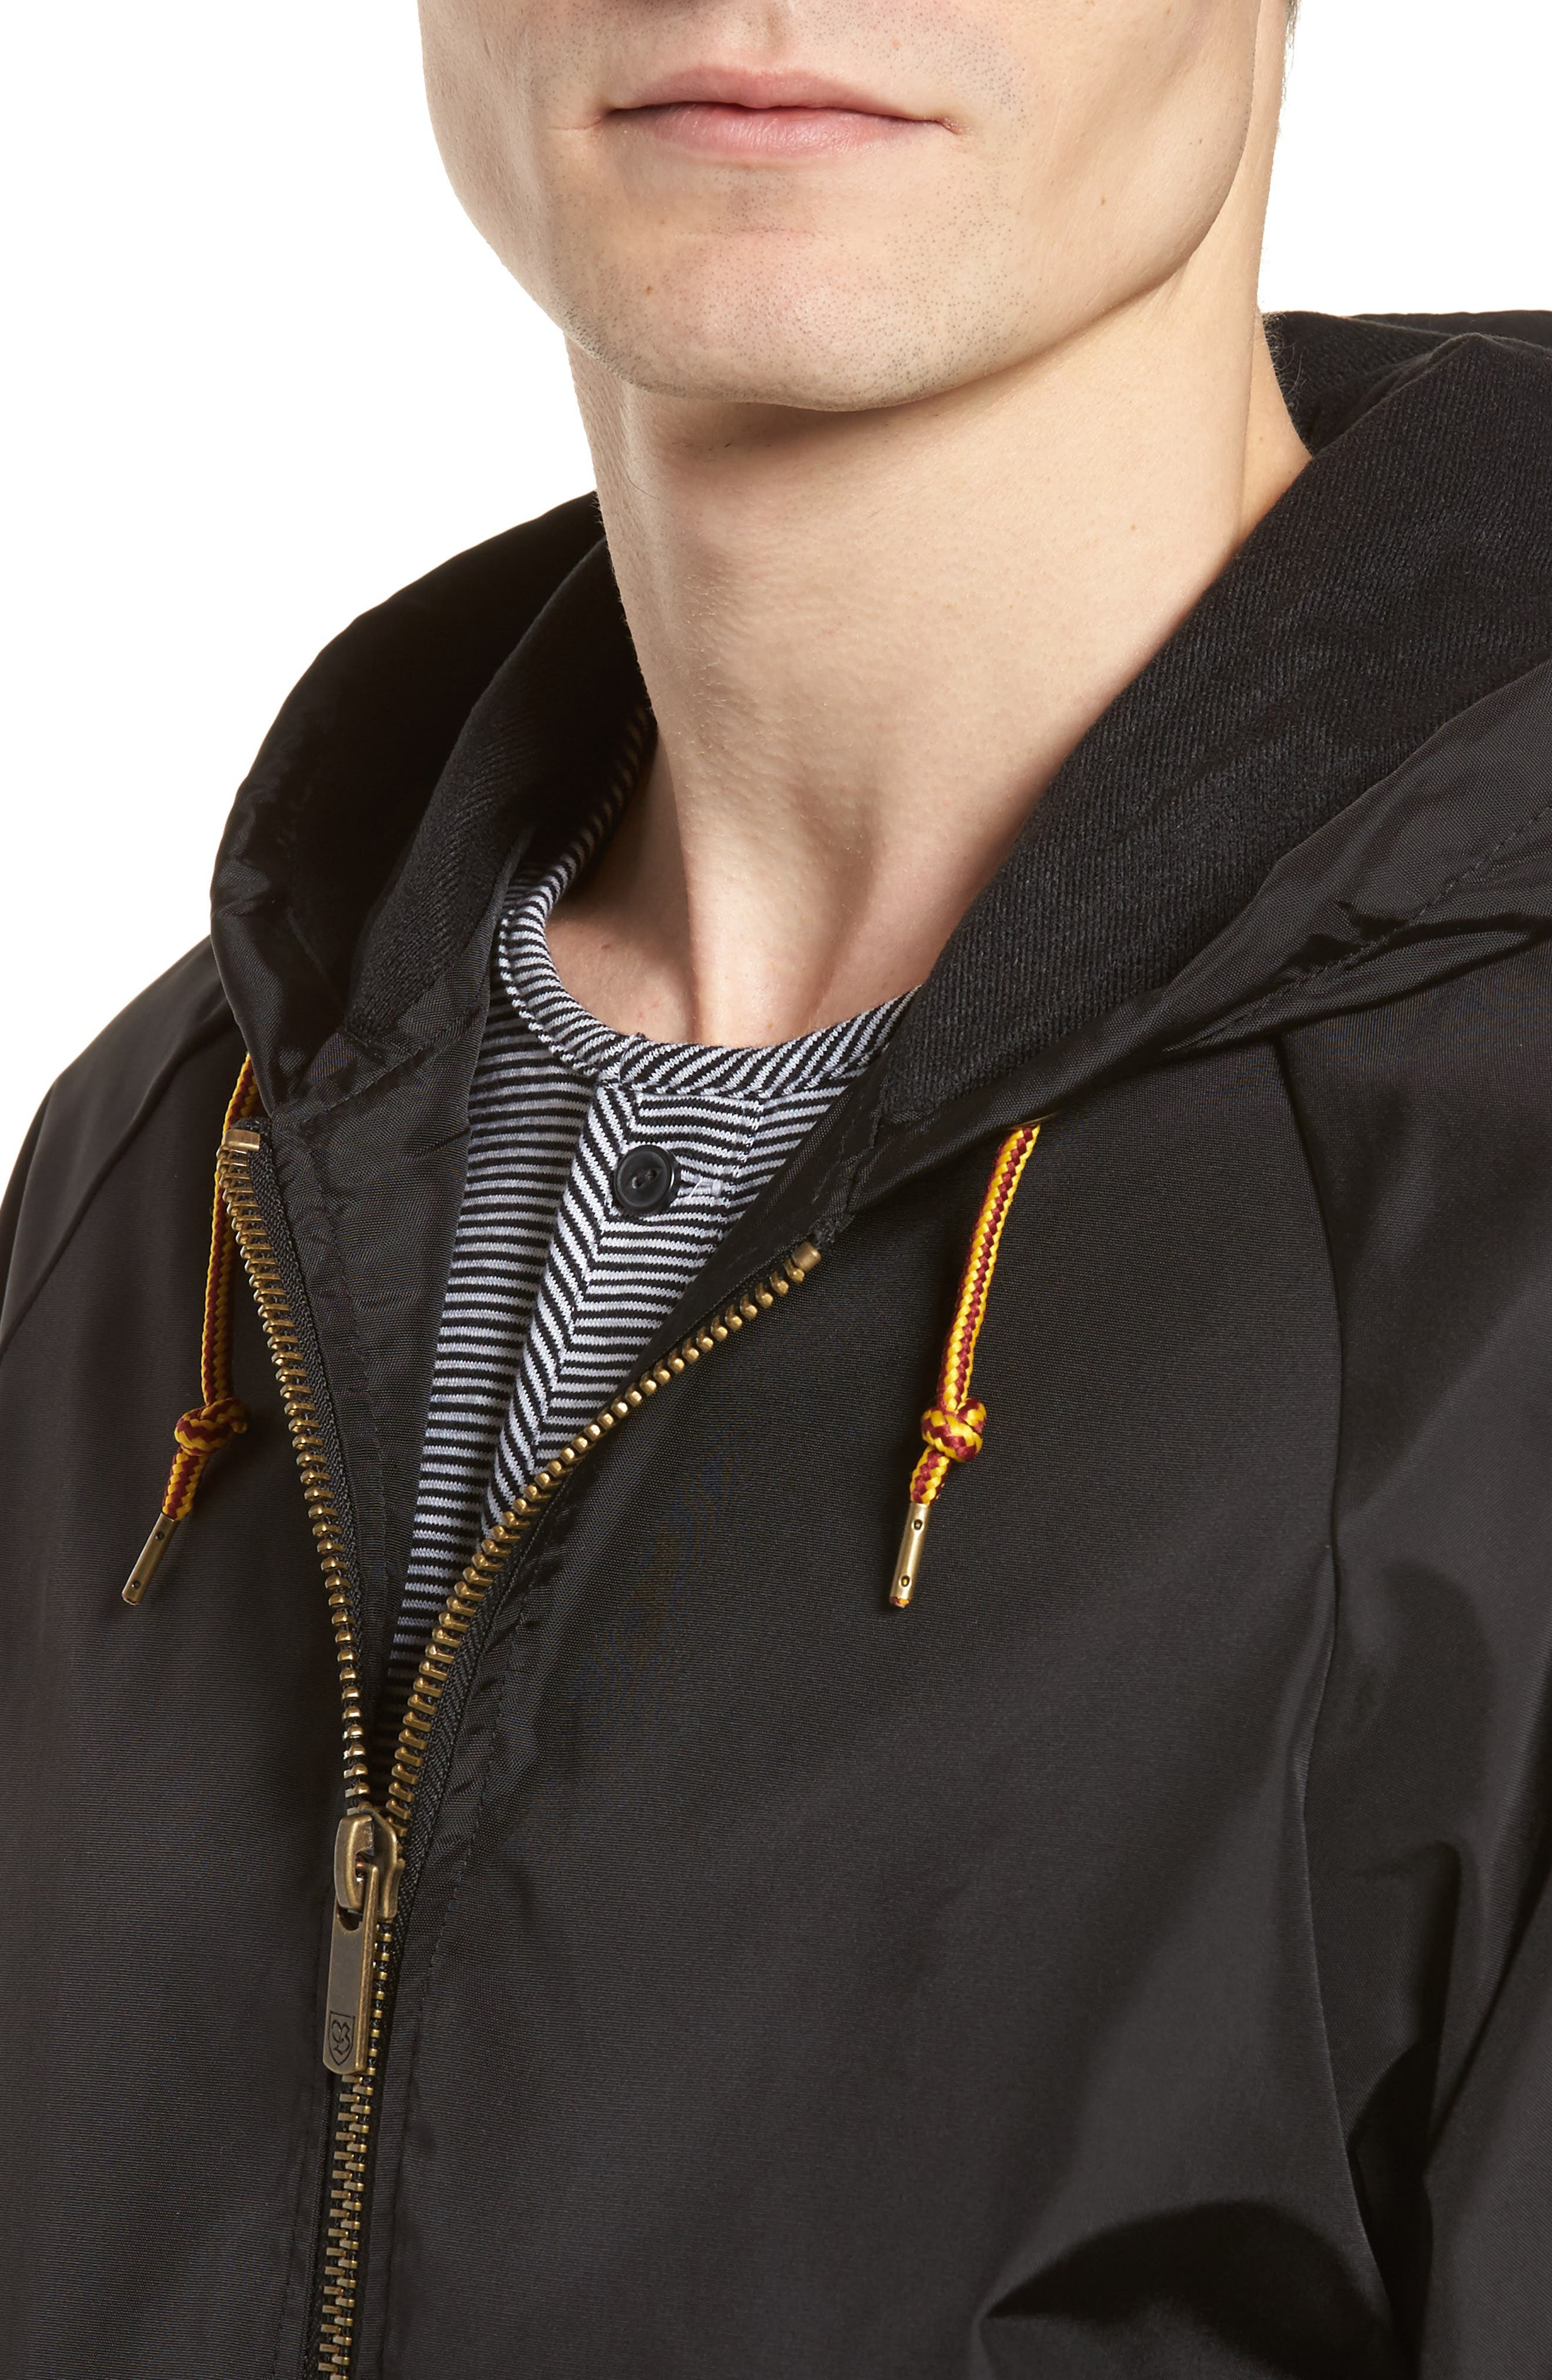 Claxton Water Repellent Hooded Windbreaker,                             Alternate thumbnail 4, color,                             001